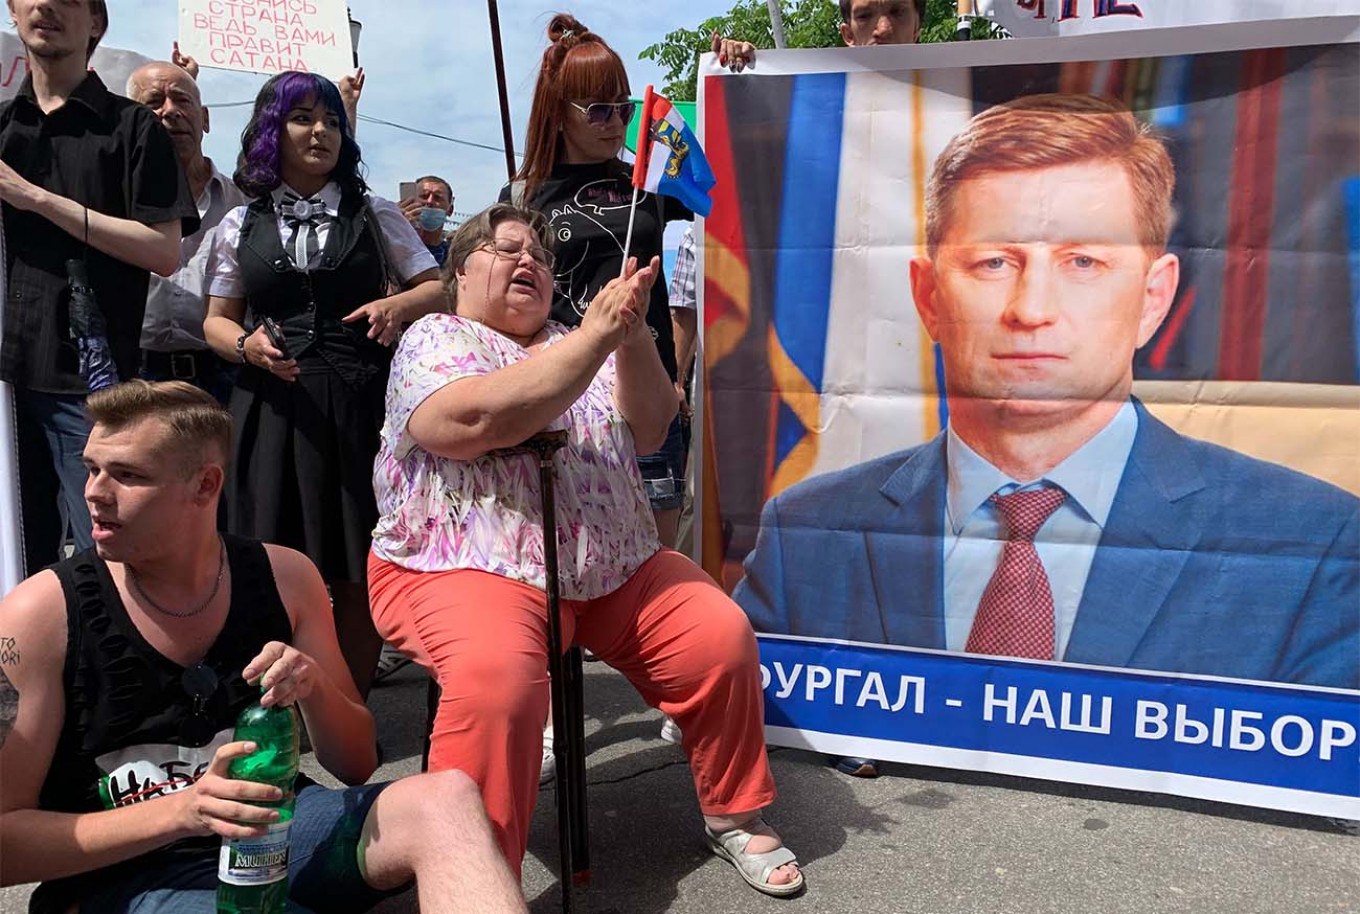 """Khabarovsk's protest movement in support of the """"people's governor"""" has morphed into anti-Kremlin discontent. Evan Gershkovich / MT"""